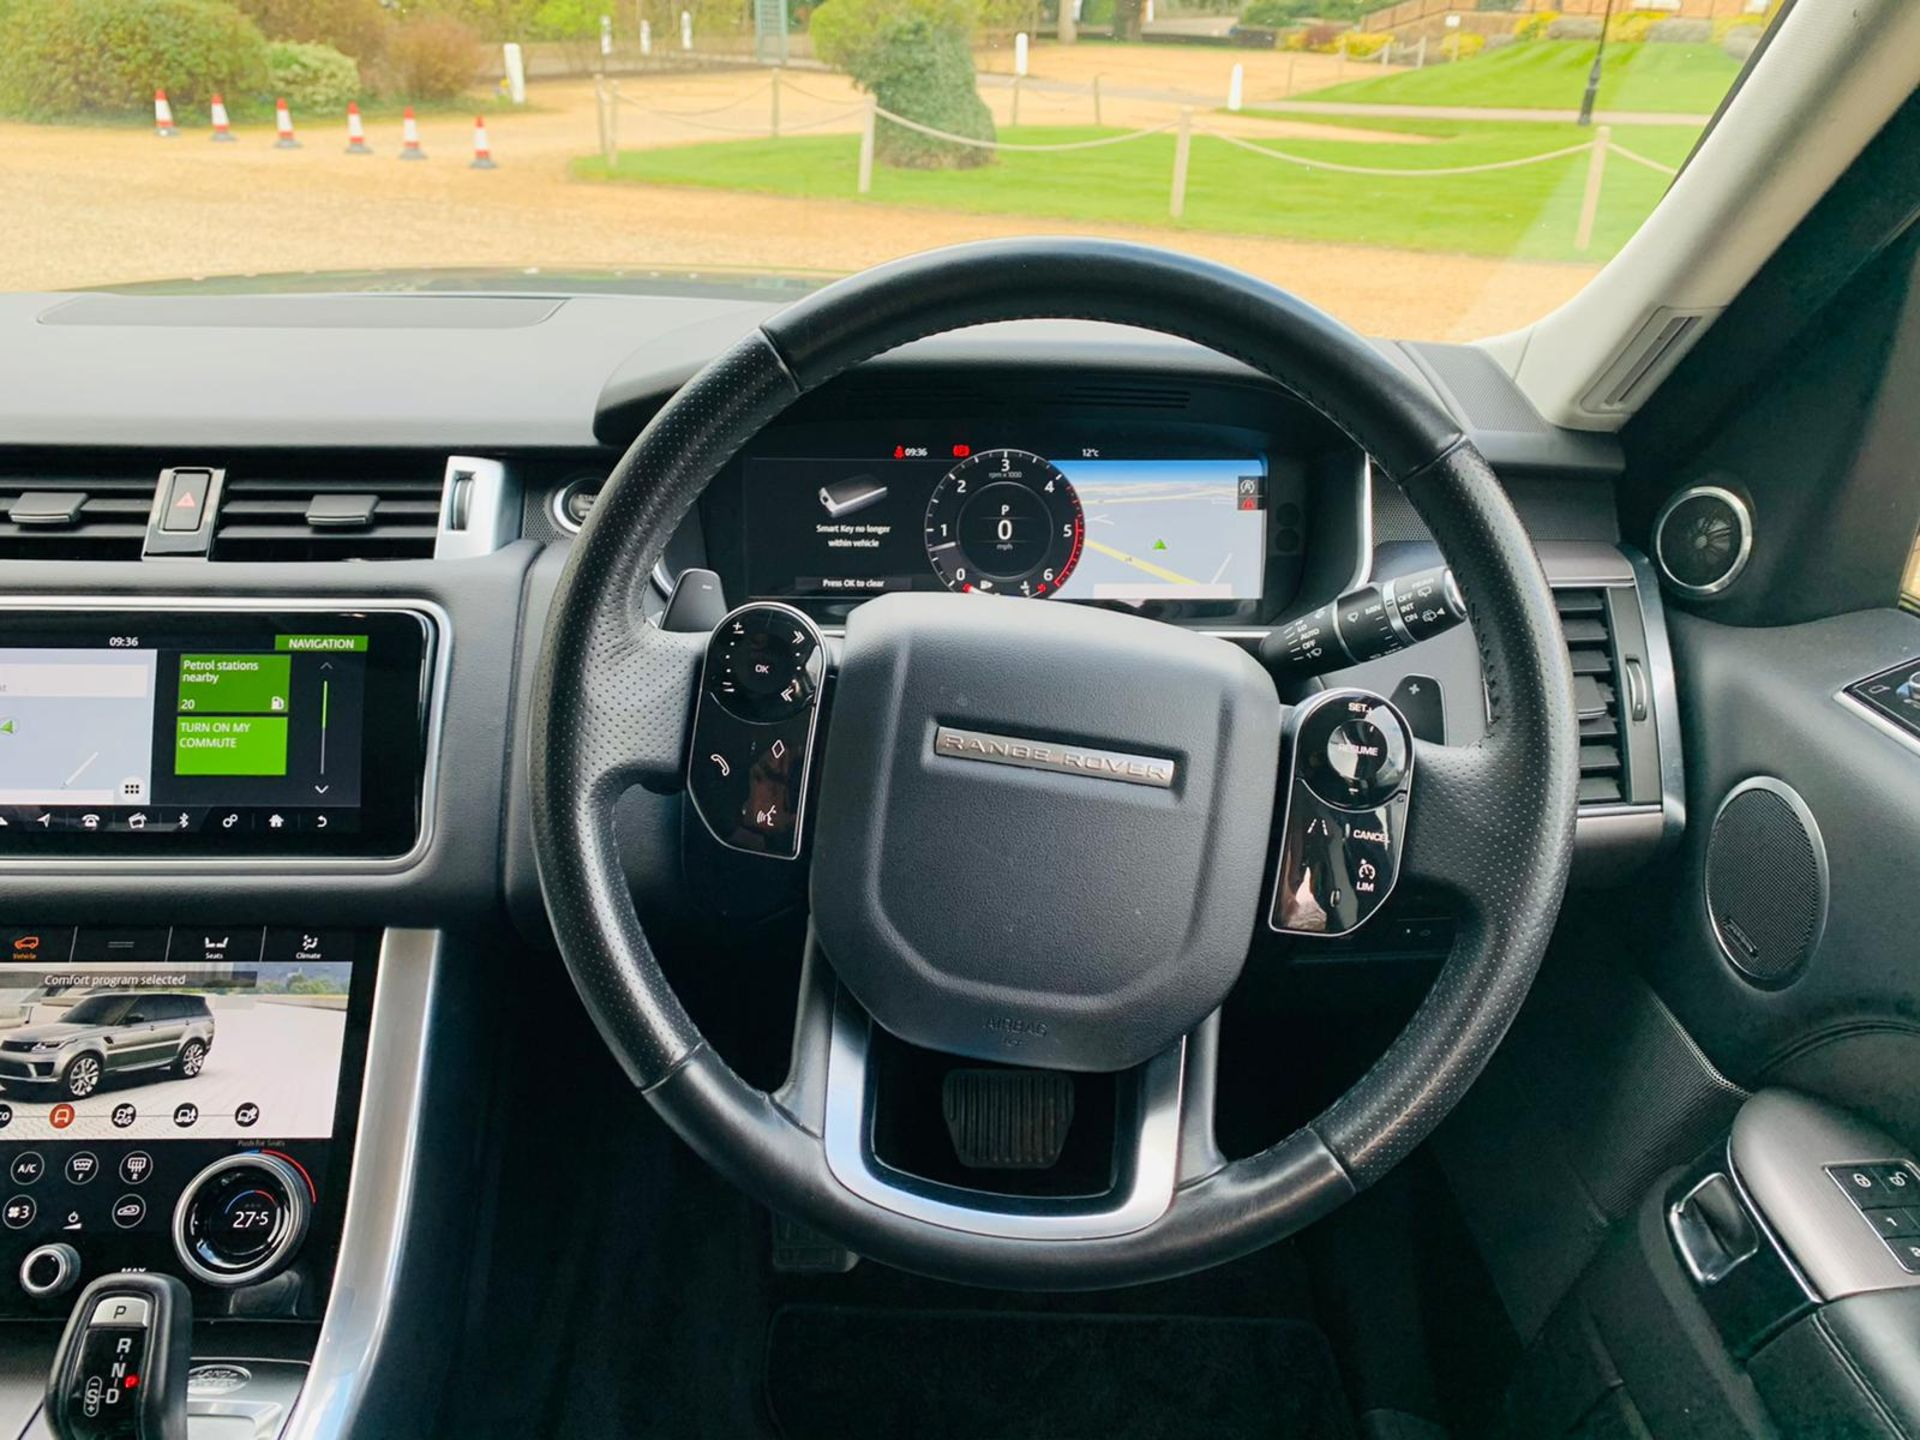 (RESERVE MET) Range Rover Sport 3.0 SDV6 HSE Auto - 2019 - 1 Keeper From New - Virtual Cockpit - - Image 22 of 42